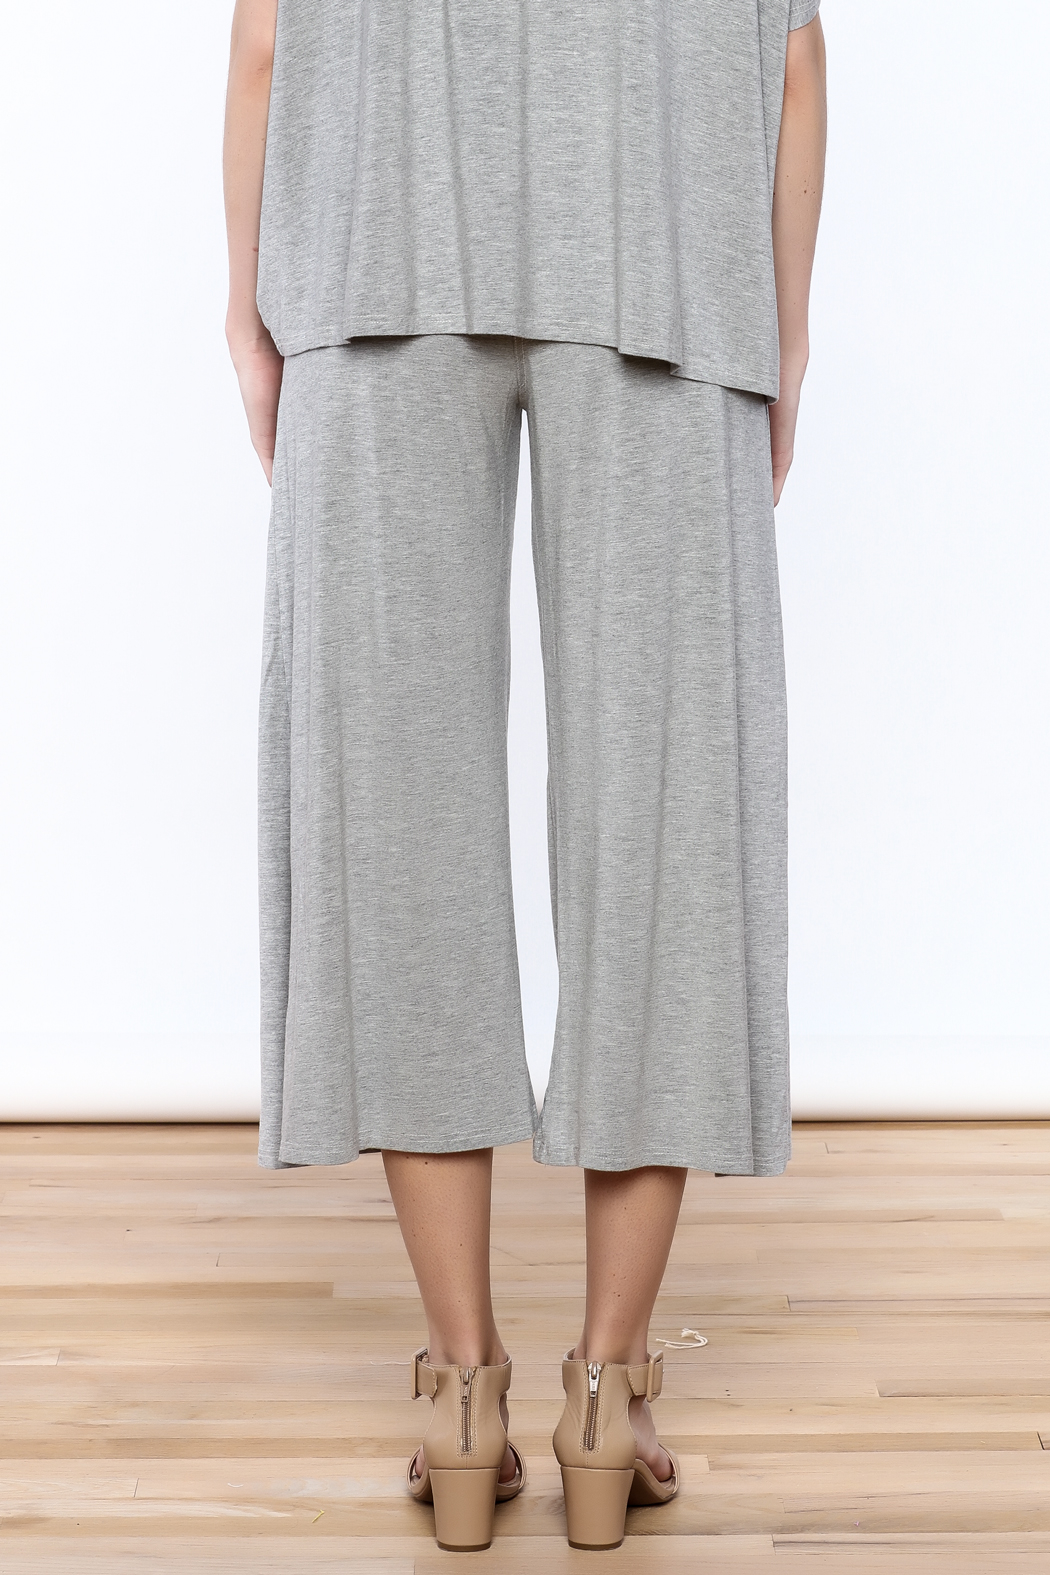 Heartstring Grey Banded Crop Pant - Back Cropped Image